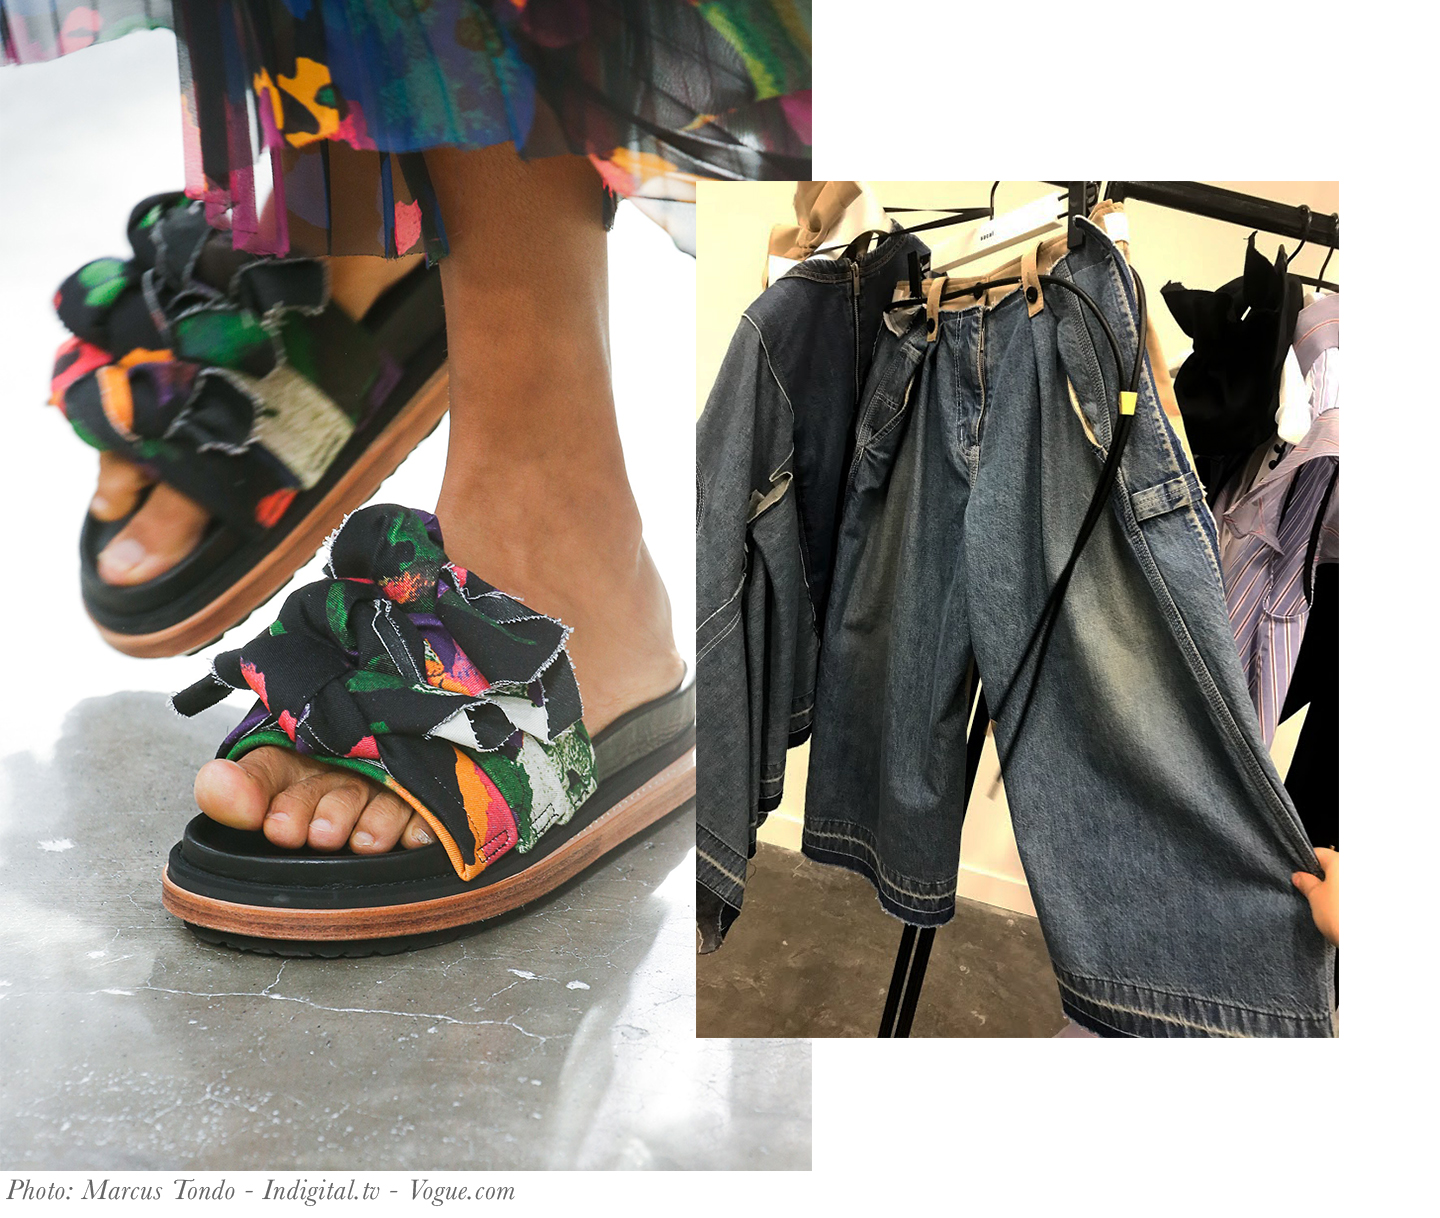 Sacai Sandals and Jeans Spring 2019